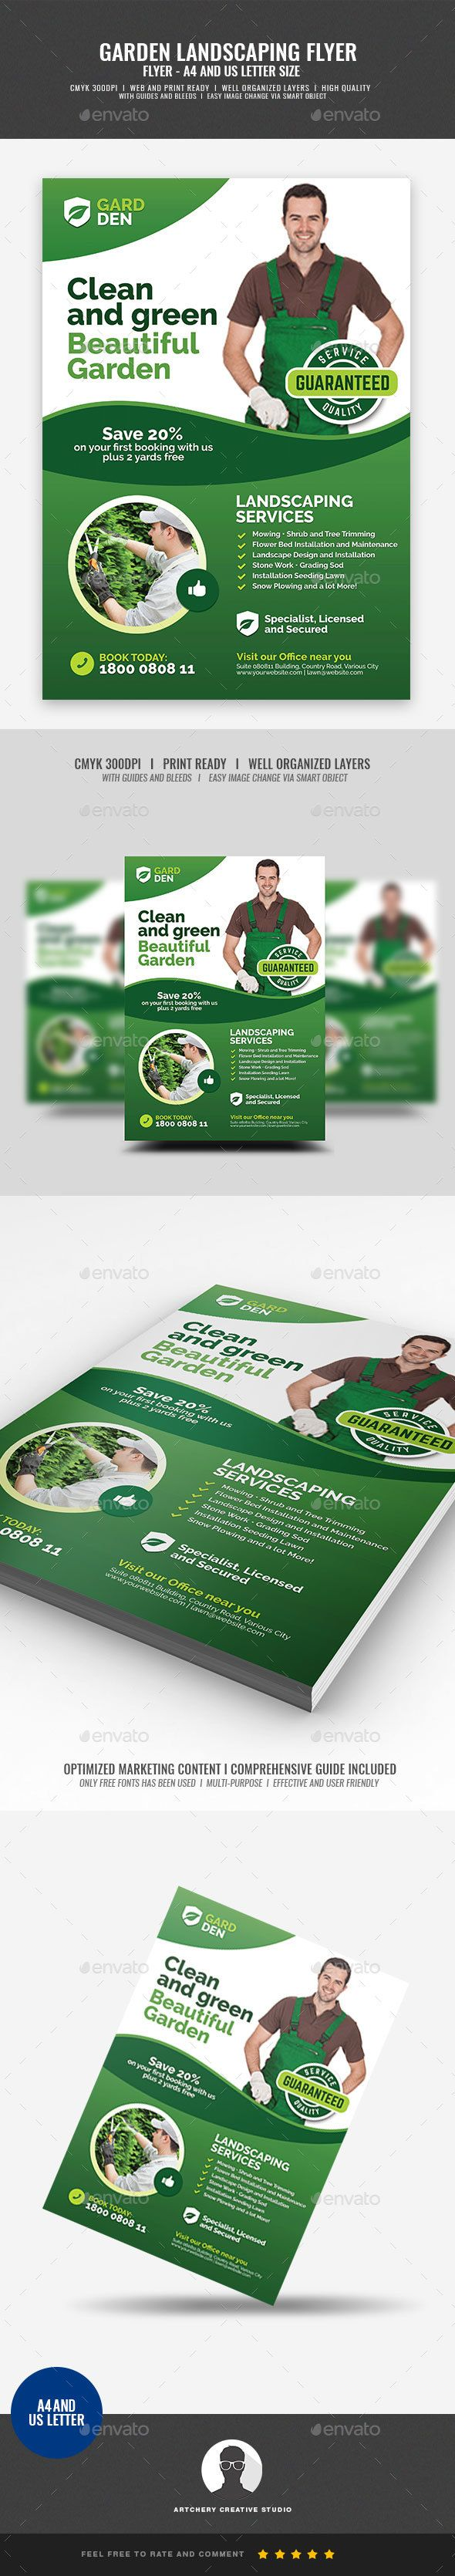 landscaping and lawn care flyer print templates flyers corporate tags a4 flyer advertise advertisement backyard backyard design cleaning flower